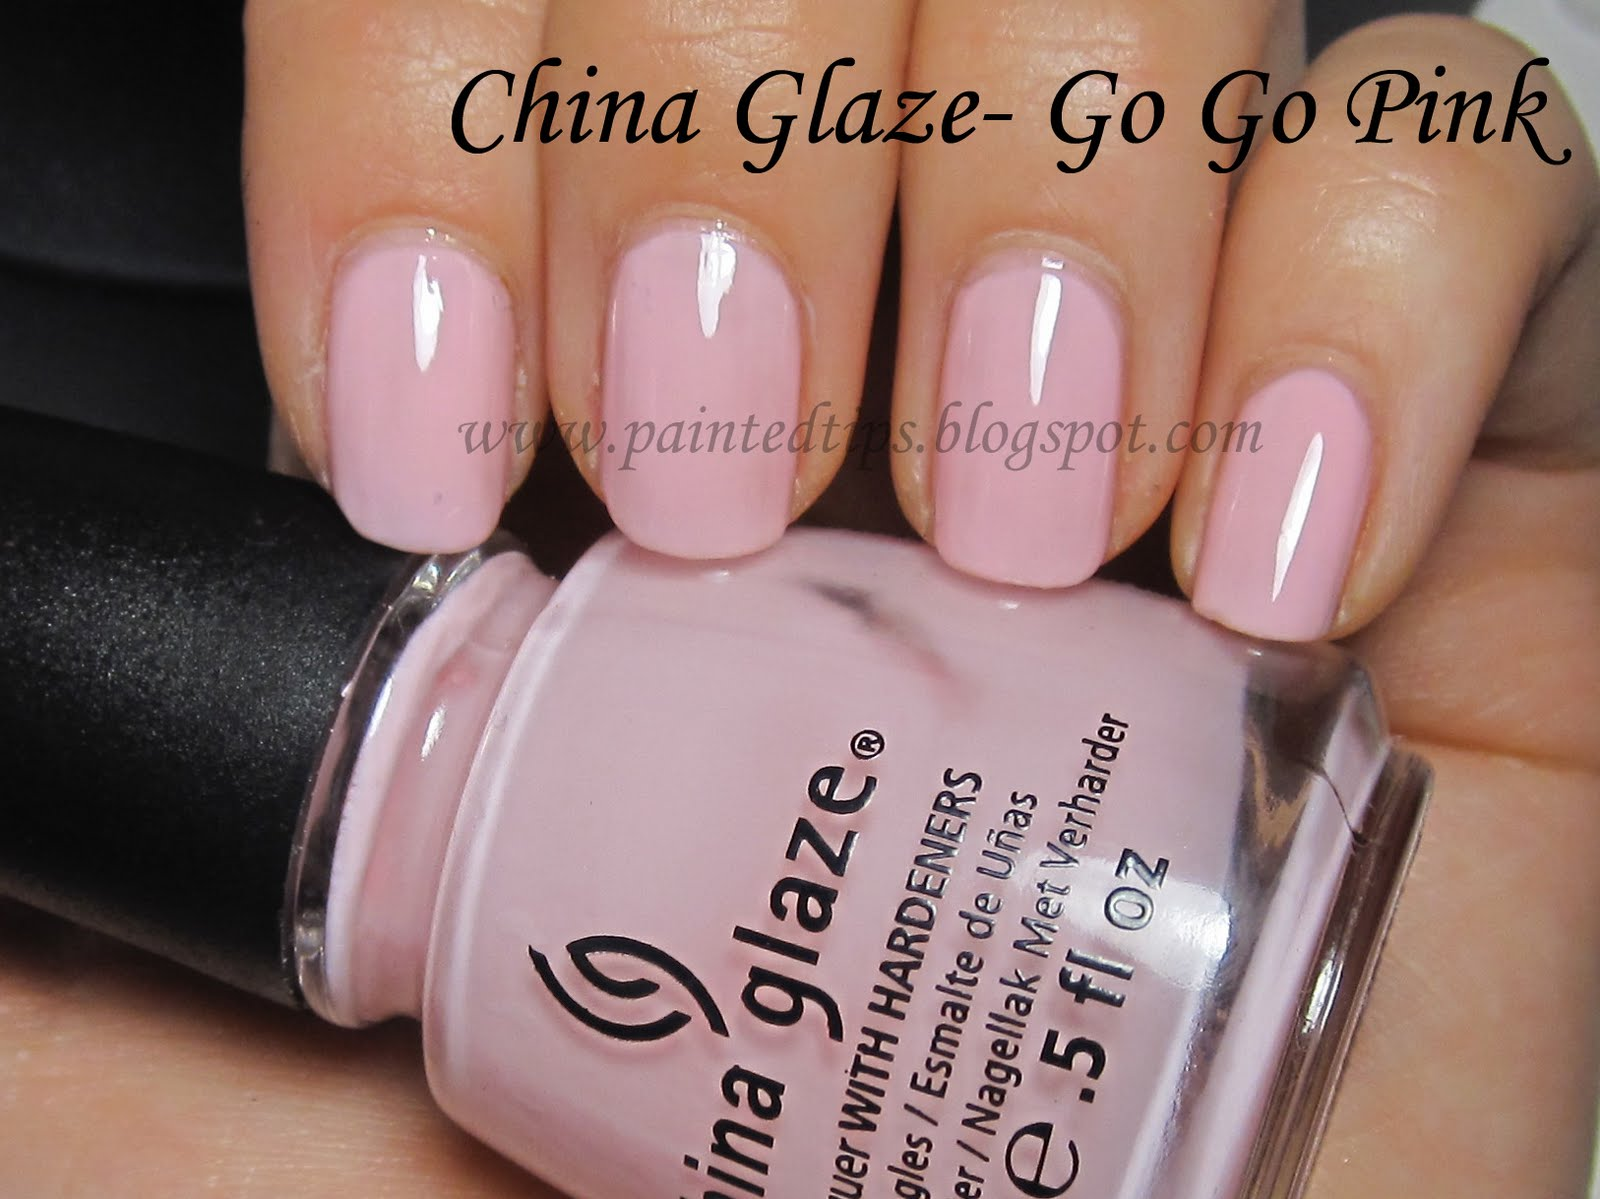 Painted Tips: China Glaze- Go Go Pink